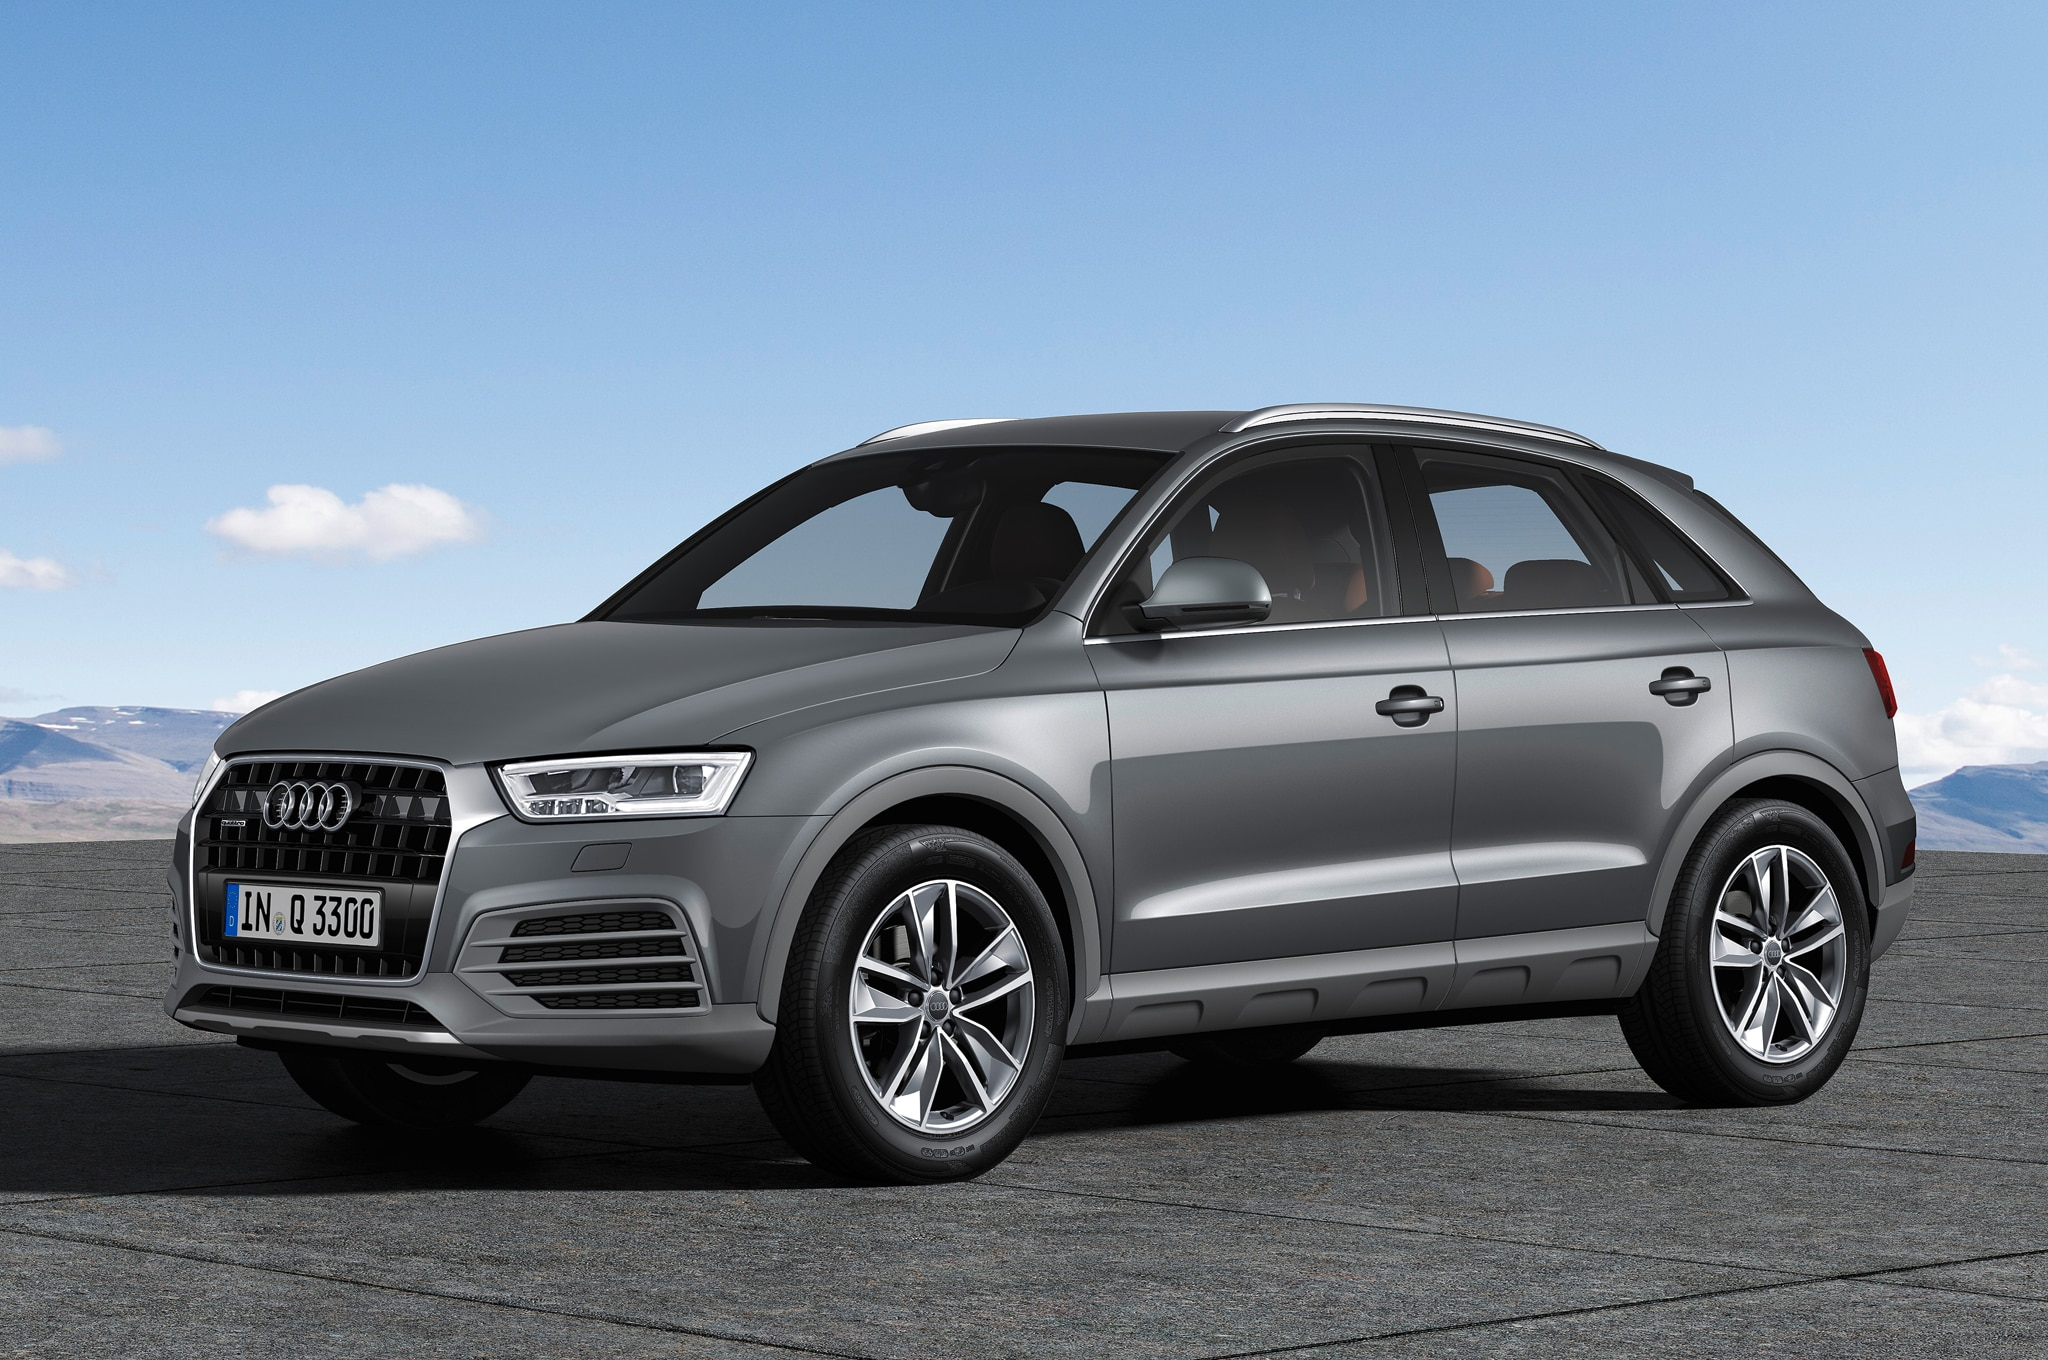 2016 Audi Q3 Pricing Starts At $34,625